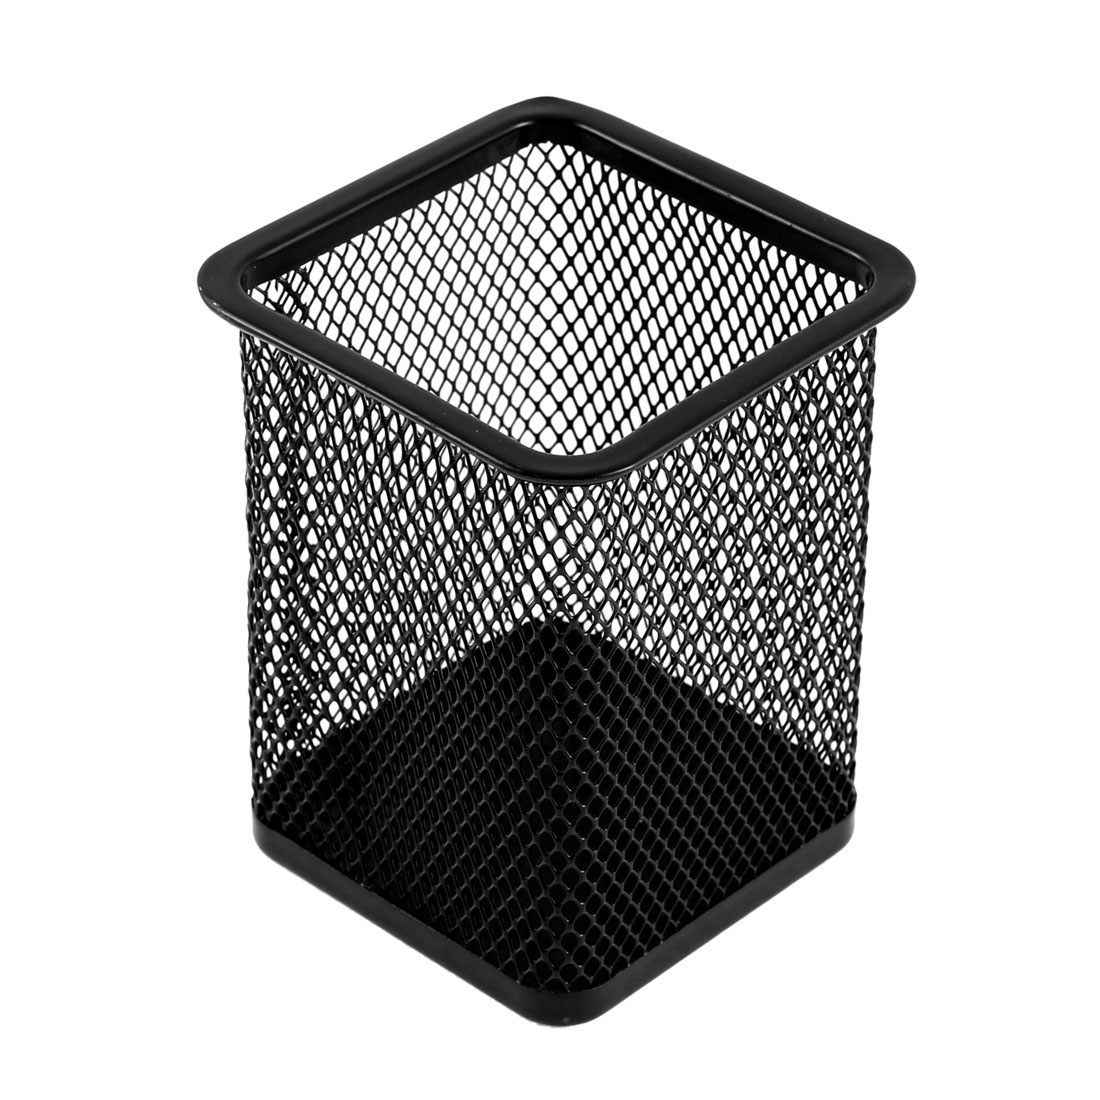 Office Desk Metal Meshy Square Shaped Pen Pencil Holder Organizer Container Black